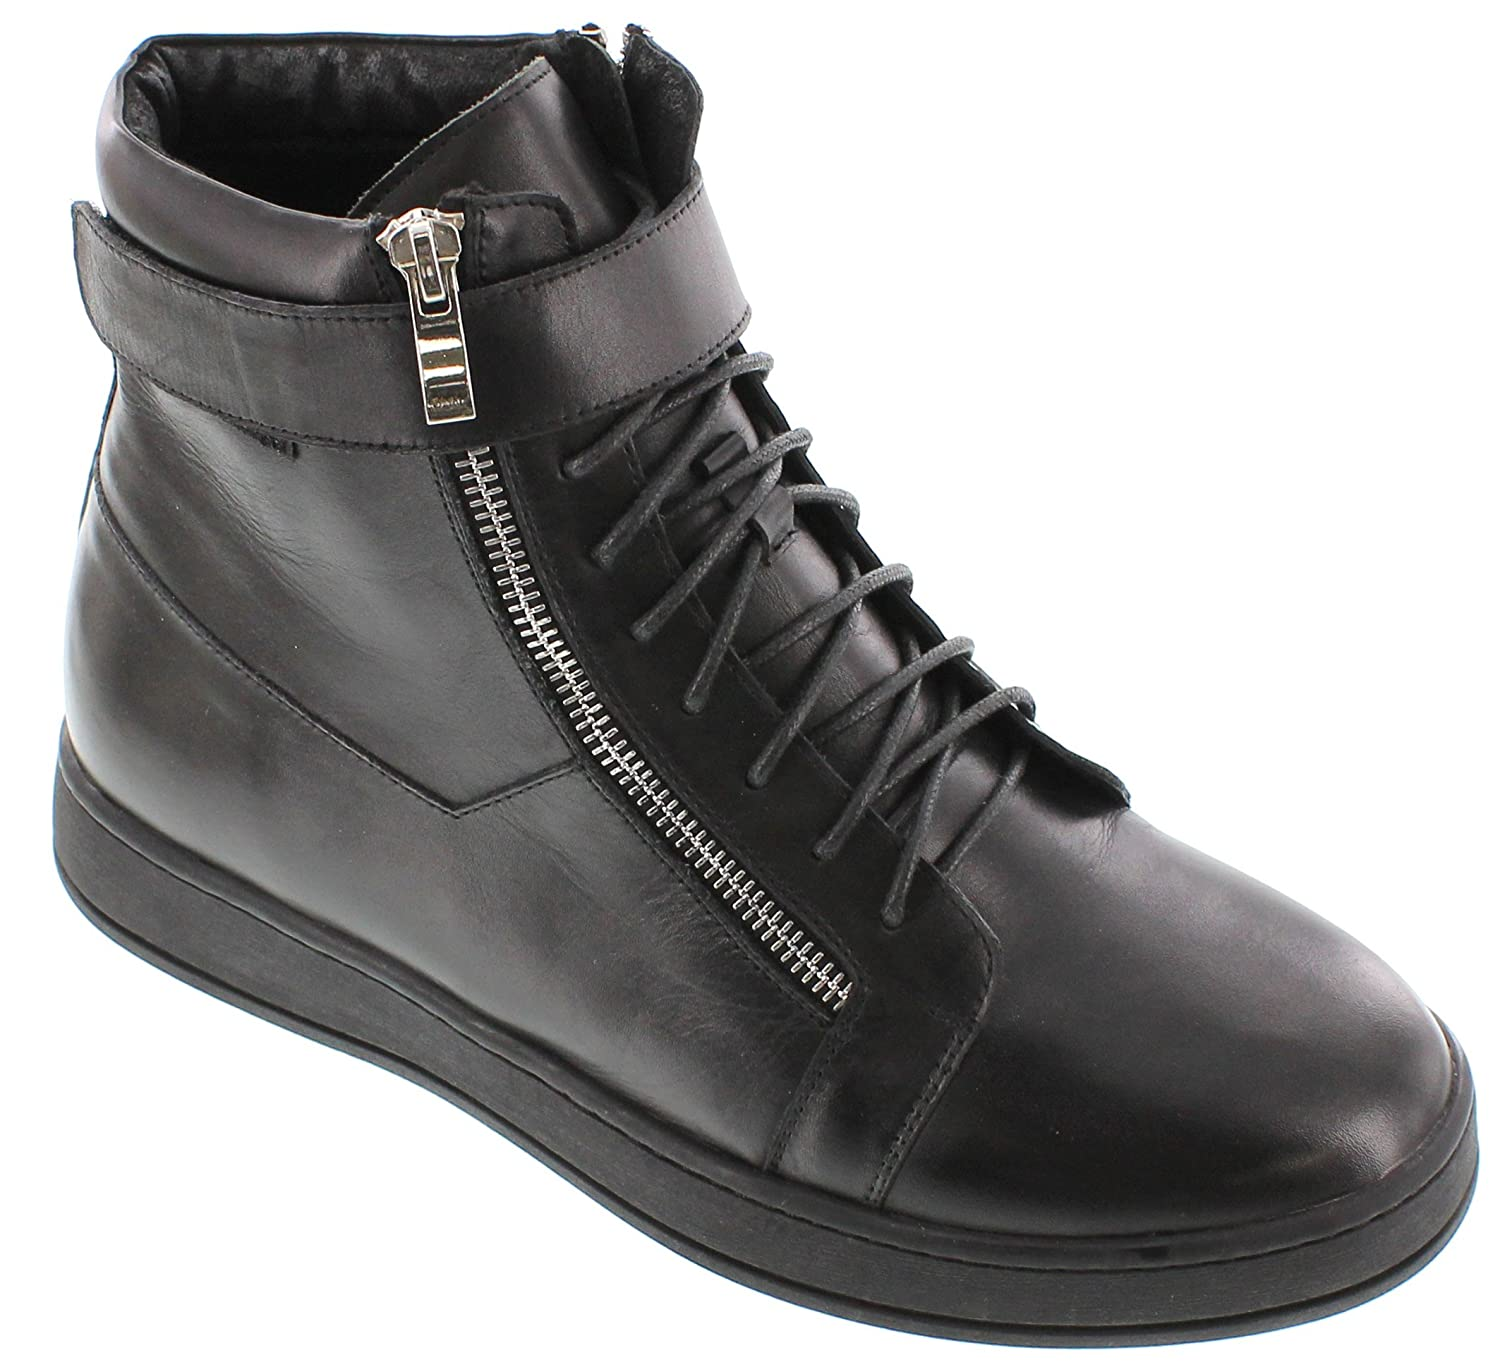 CALTO - G10721-3.2 Inches Taller - Height Increasing Elevator Shoes (Black Leather Ankle-top Boots)